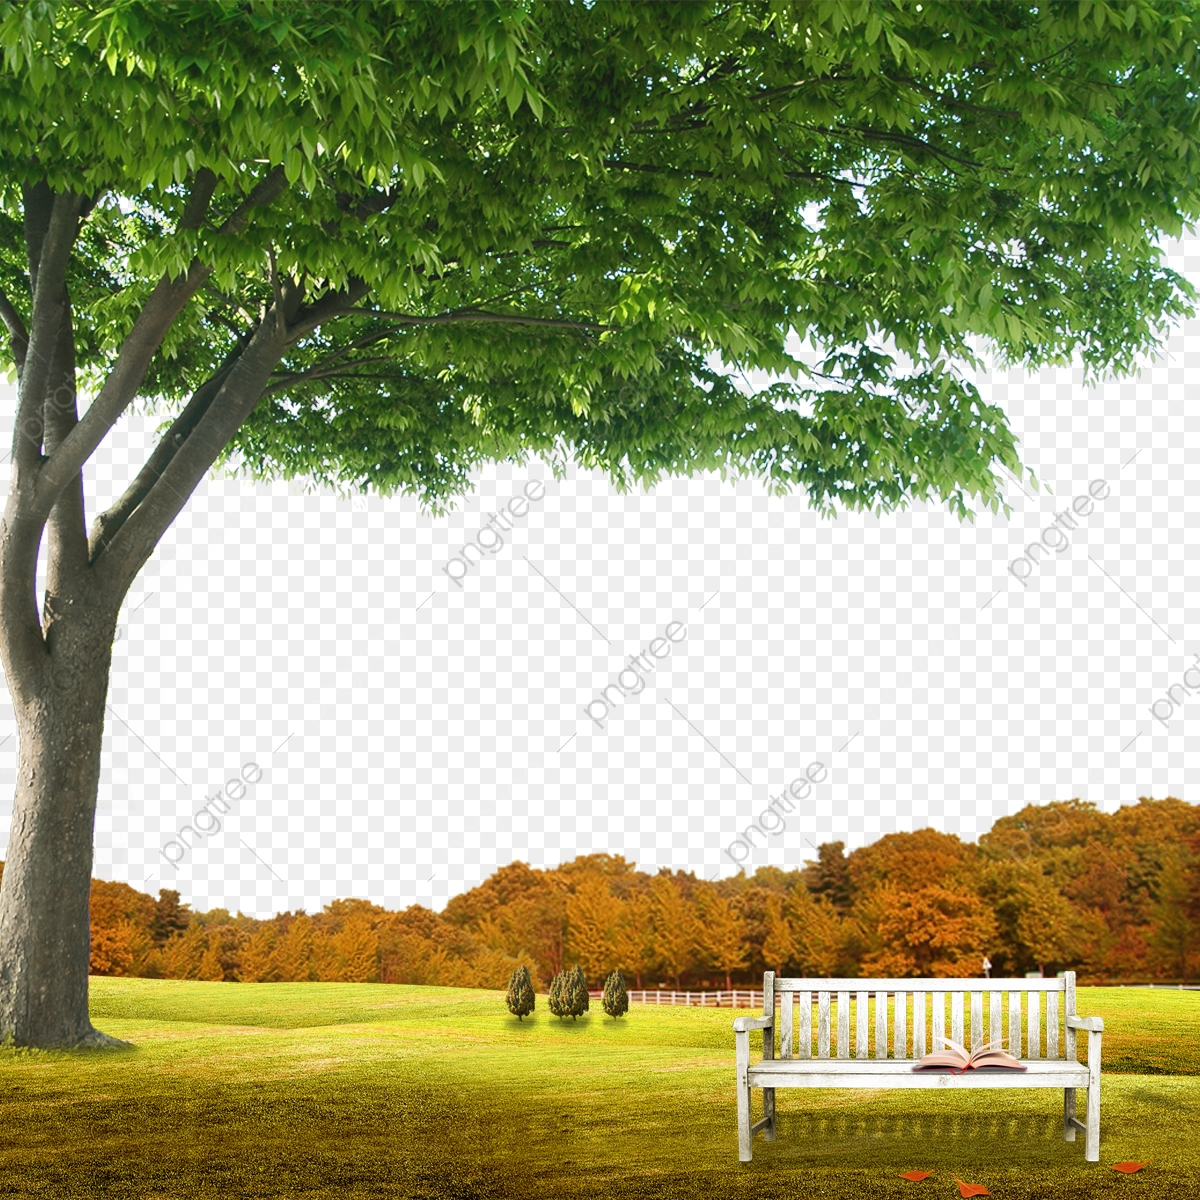 Cool Nature Backgrounds Png u0026 Free Cool Nature Backgrounds